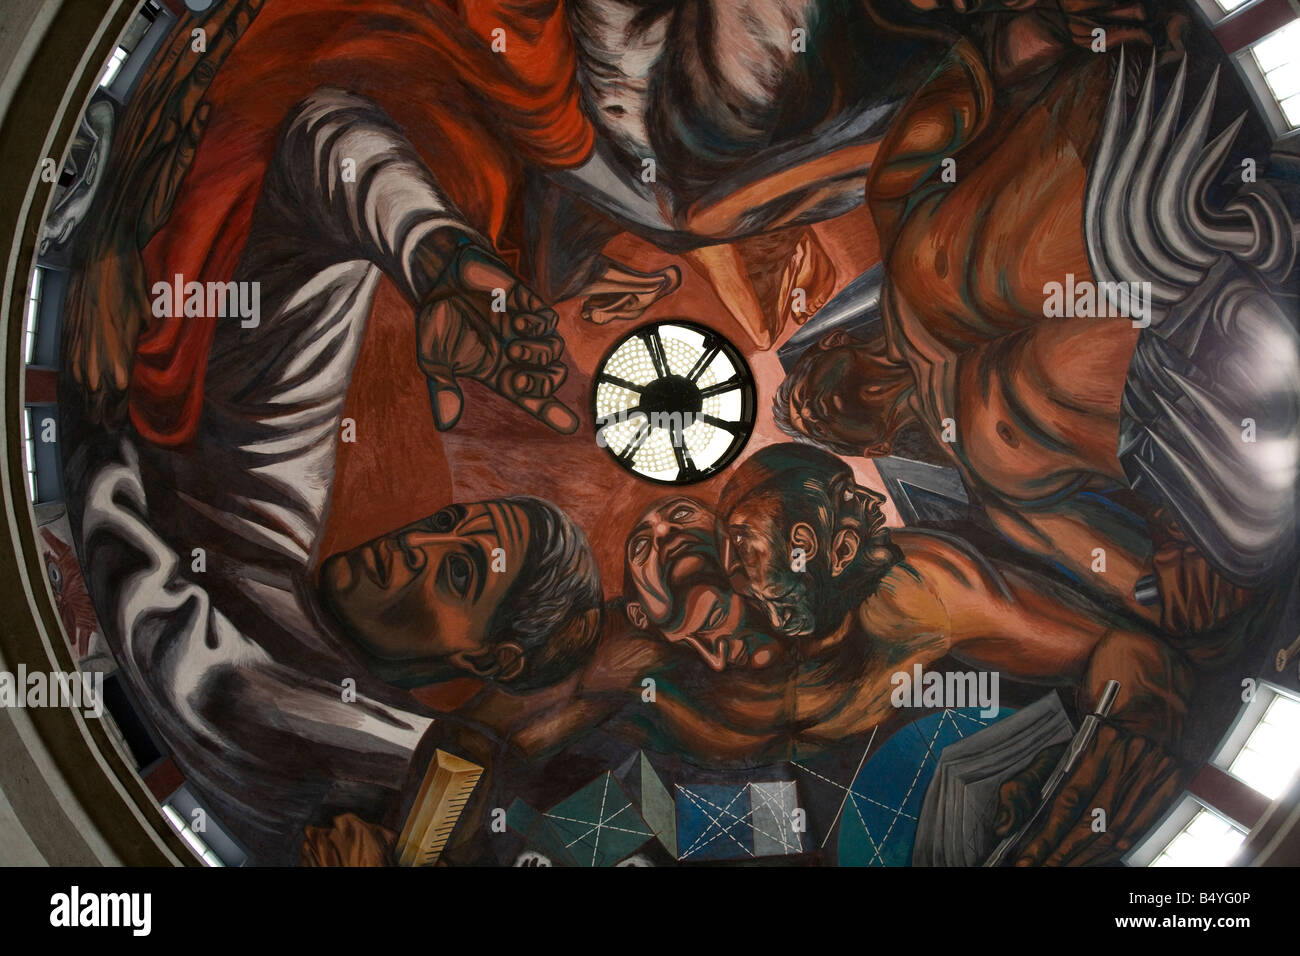 Mural by Jose Clemente Orozco in the University of